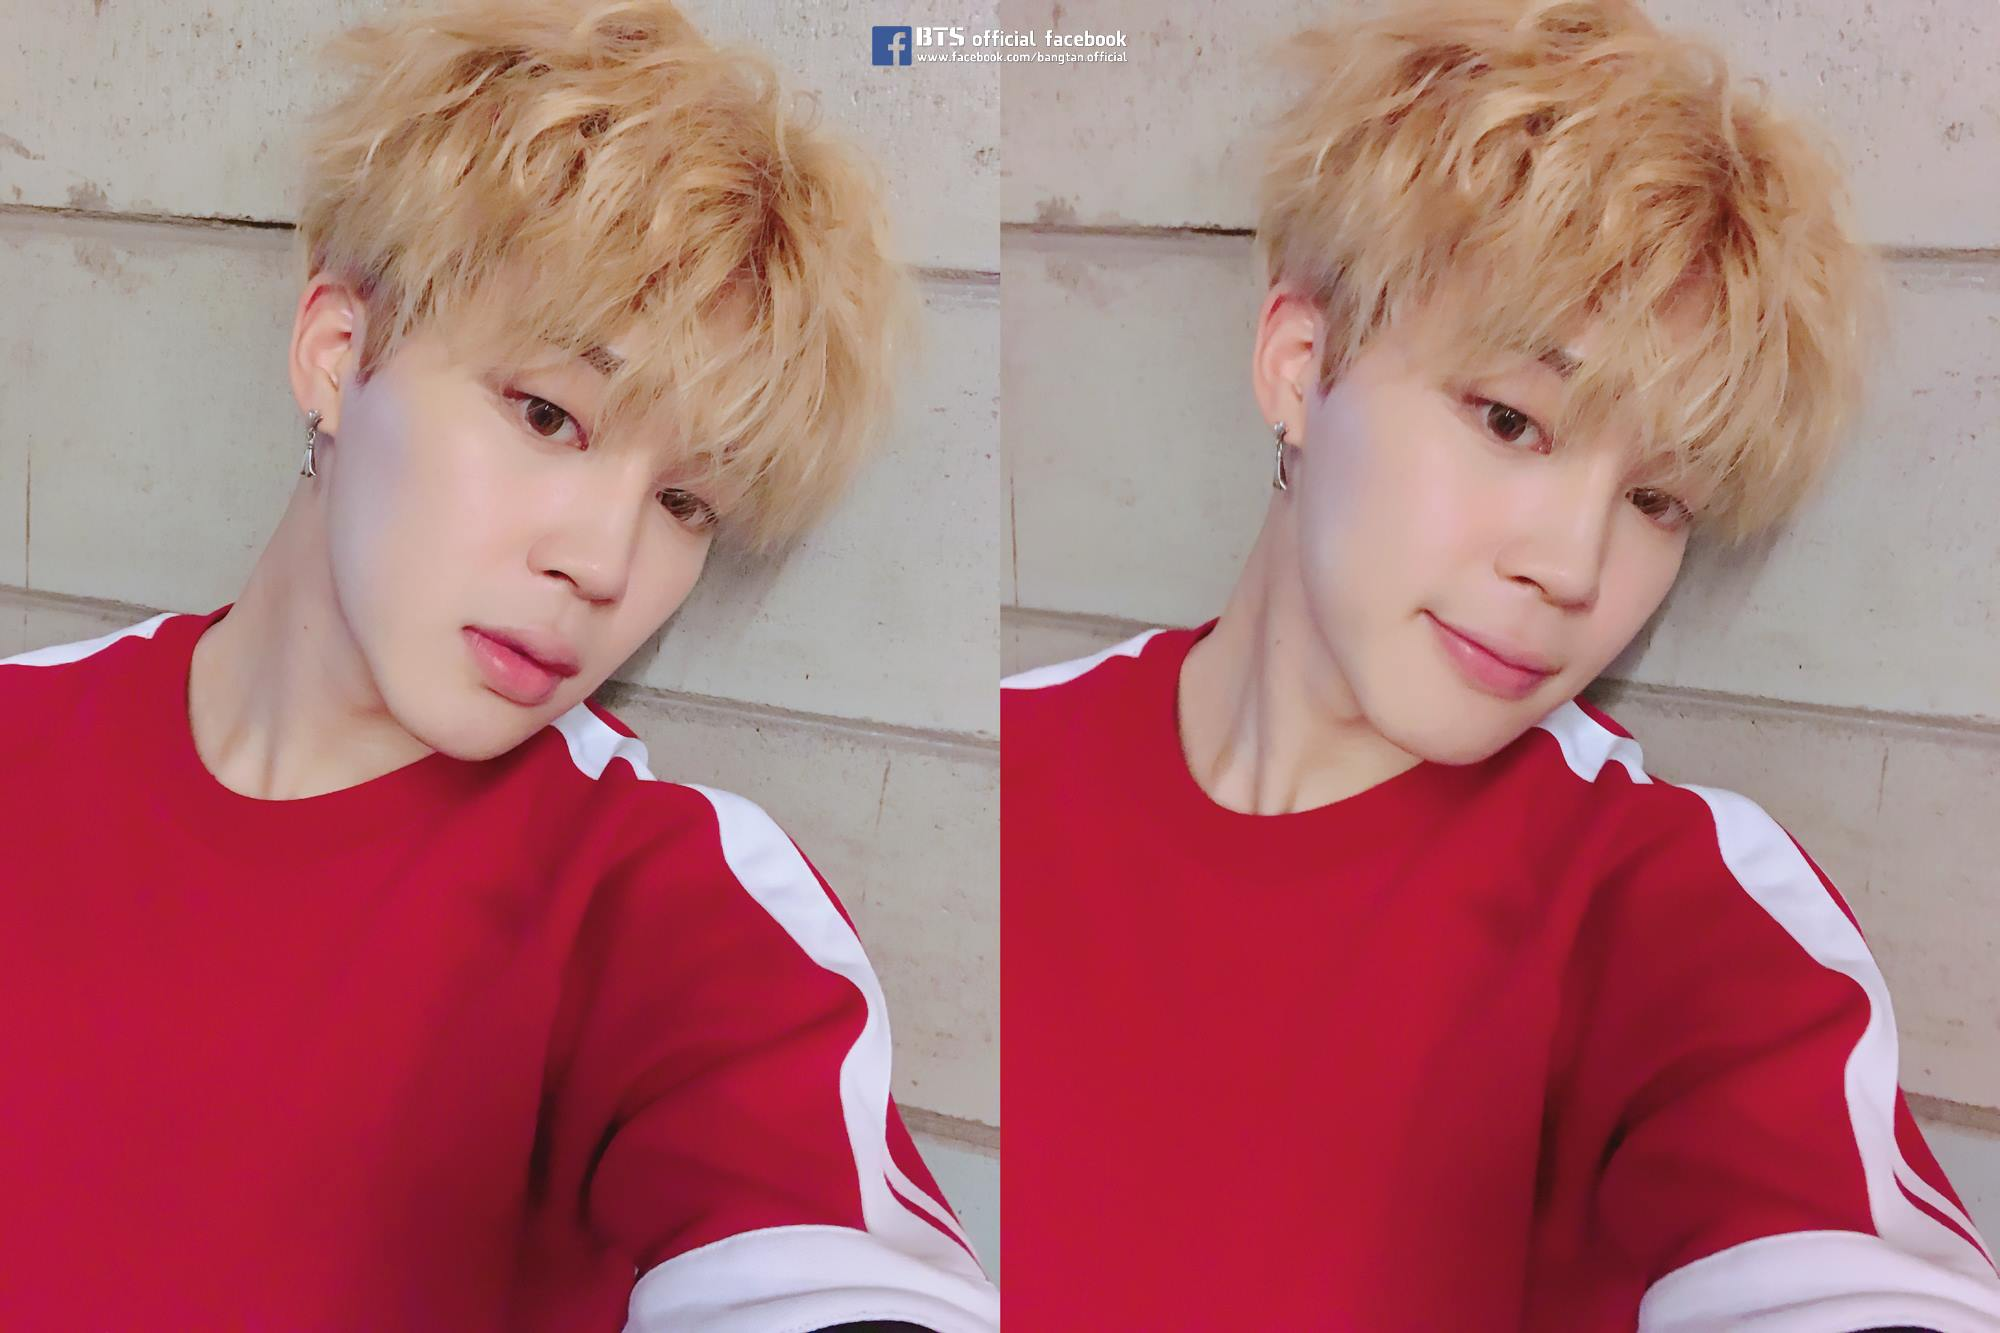 Picture Fb 2017 Chimchim Day 171013 Happyjiminday